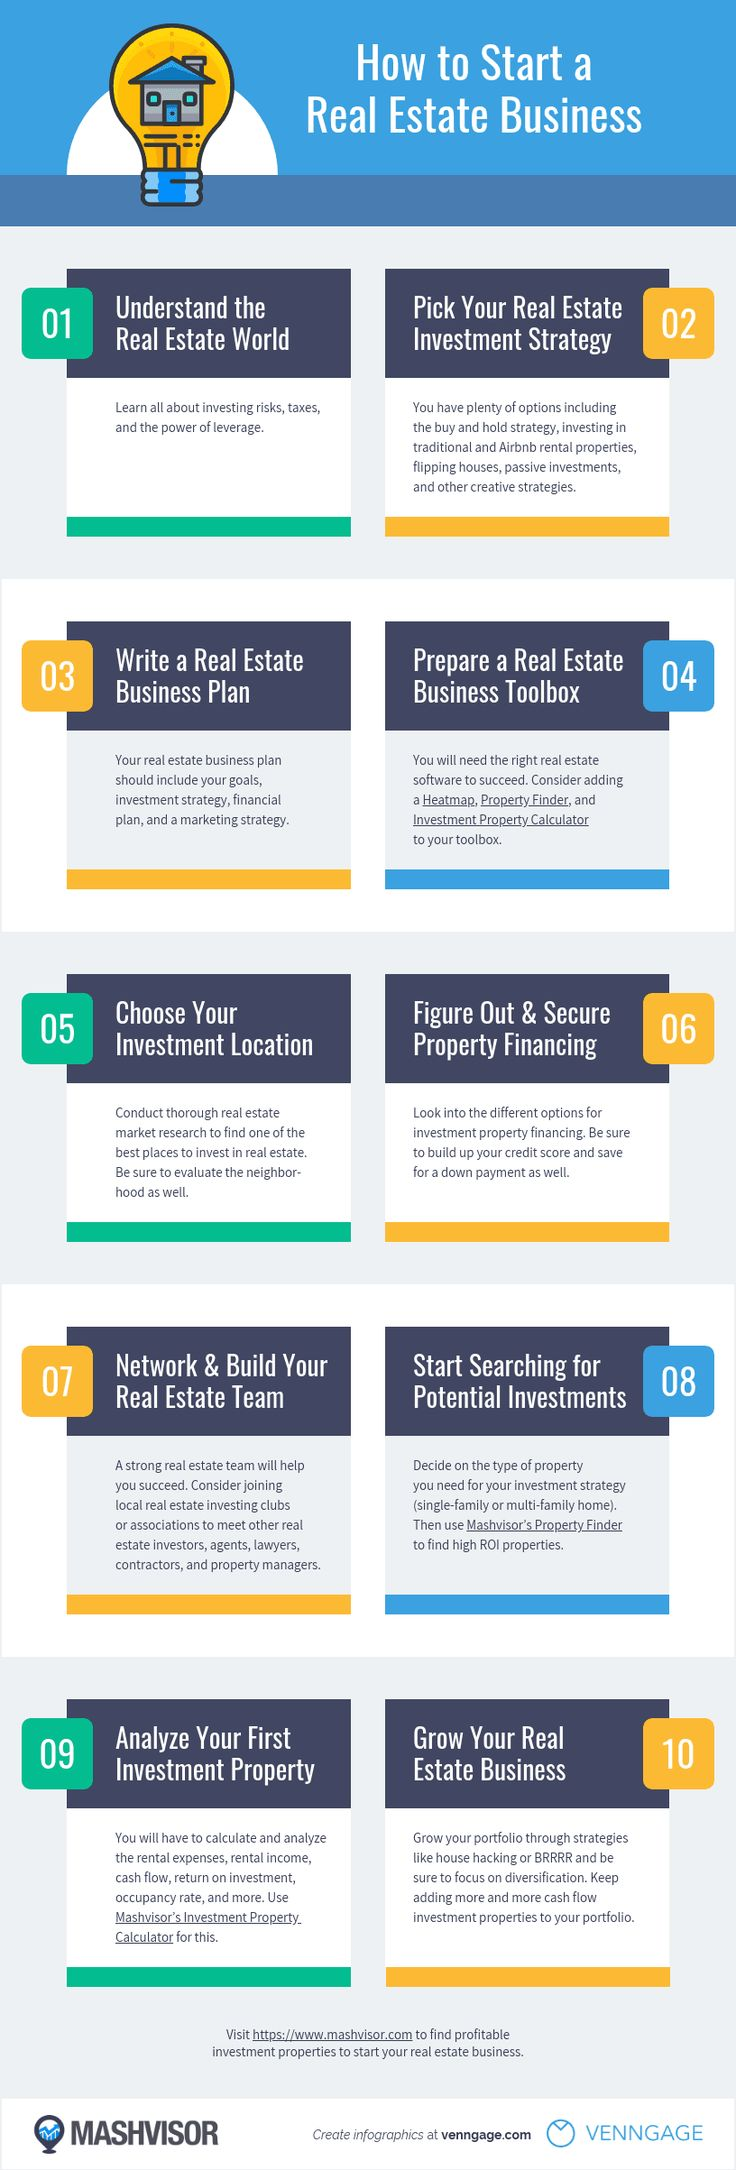 How to Start a Real Estate Business Infographic in 2020